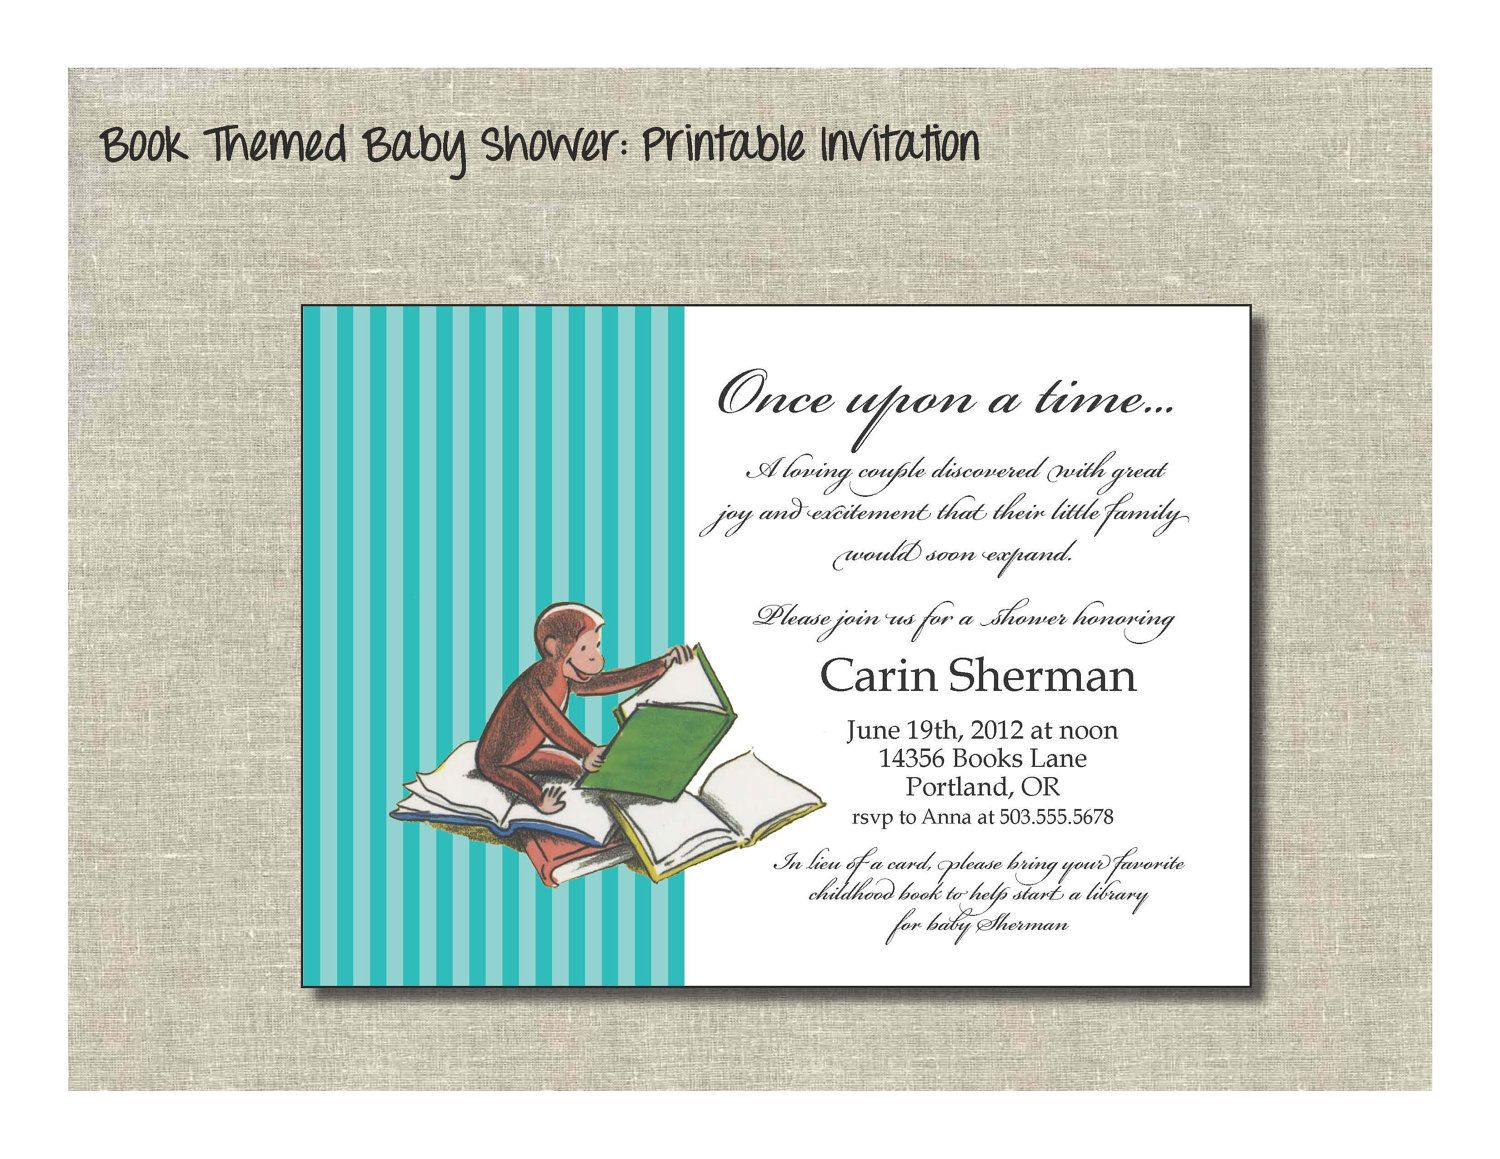 Baby Sprinkle Shower, Baby Shower Books, Printable Invitations, Baby Shower  Invitations, Curious George, Themed Baby Showers, Shower Ideas, Baby  Things, ...